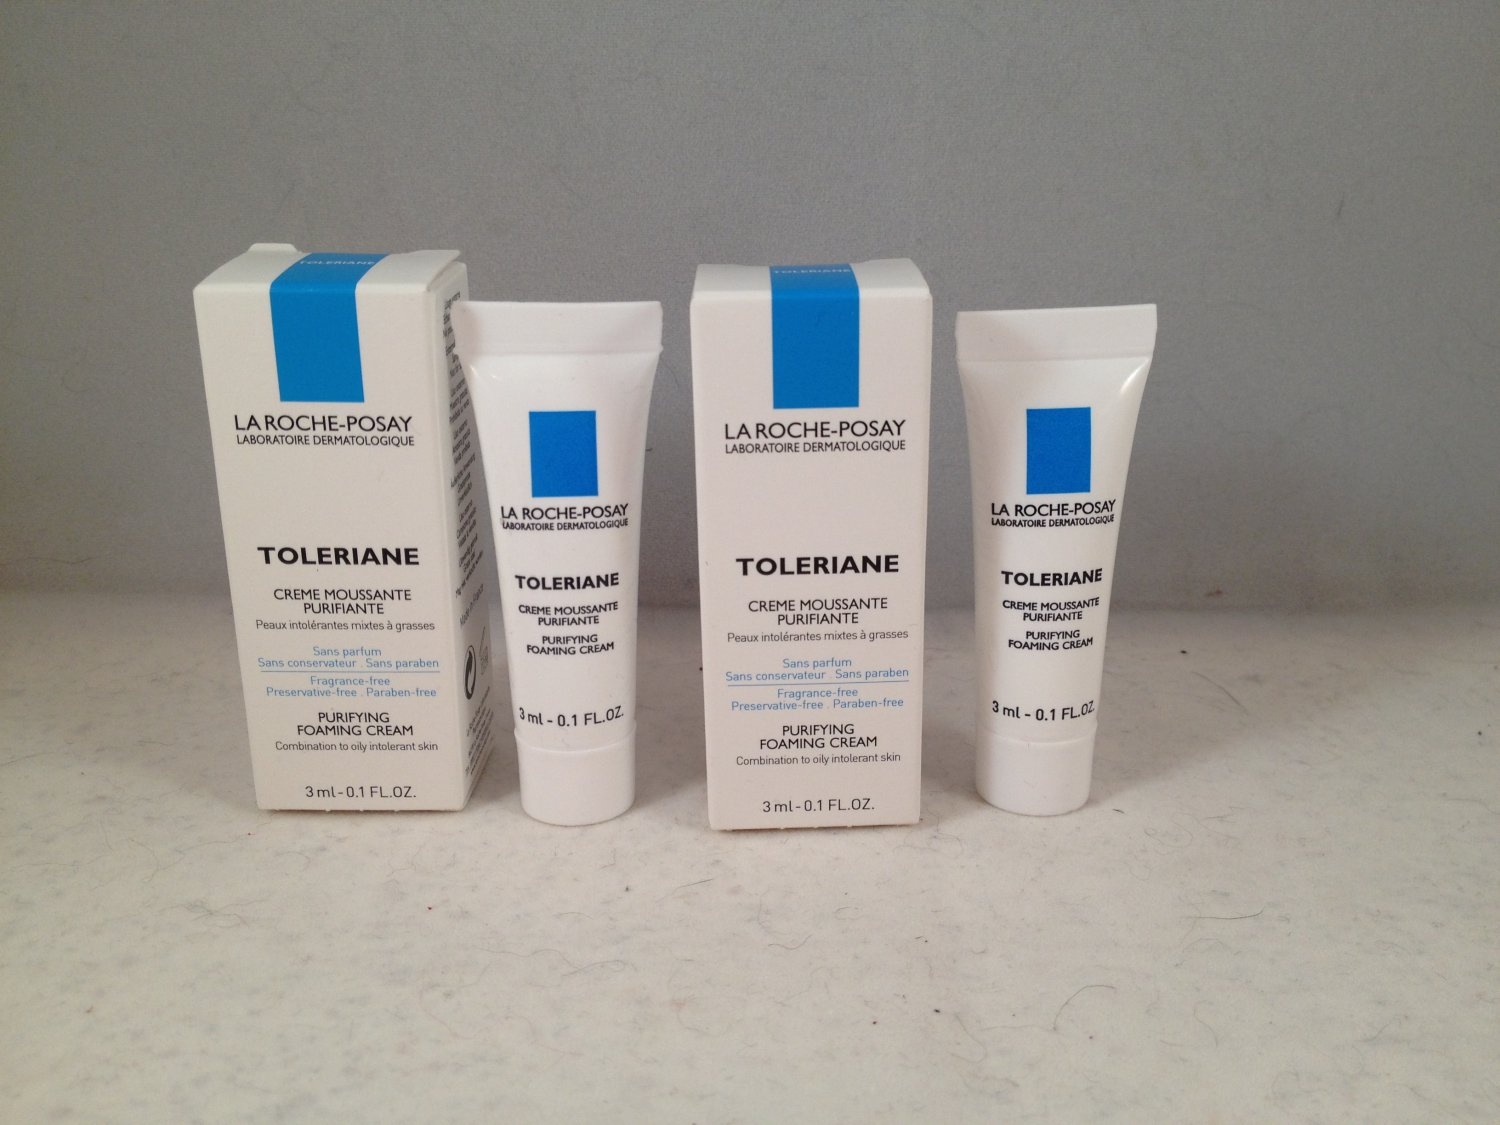 Lot of 2 La Roche-Posay Toleriane Purifying Foaming Cream Cleanser Trial Size